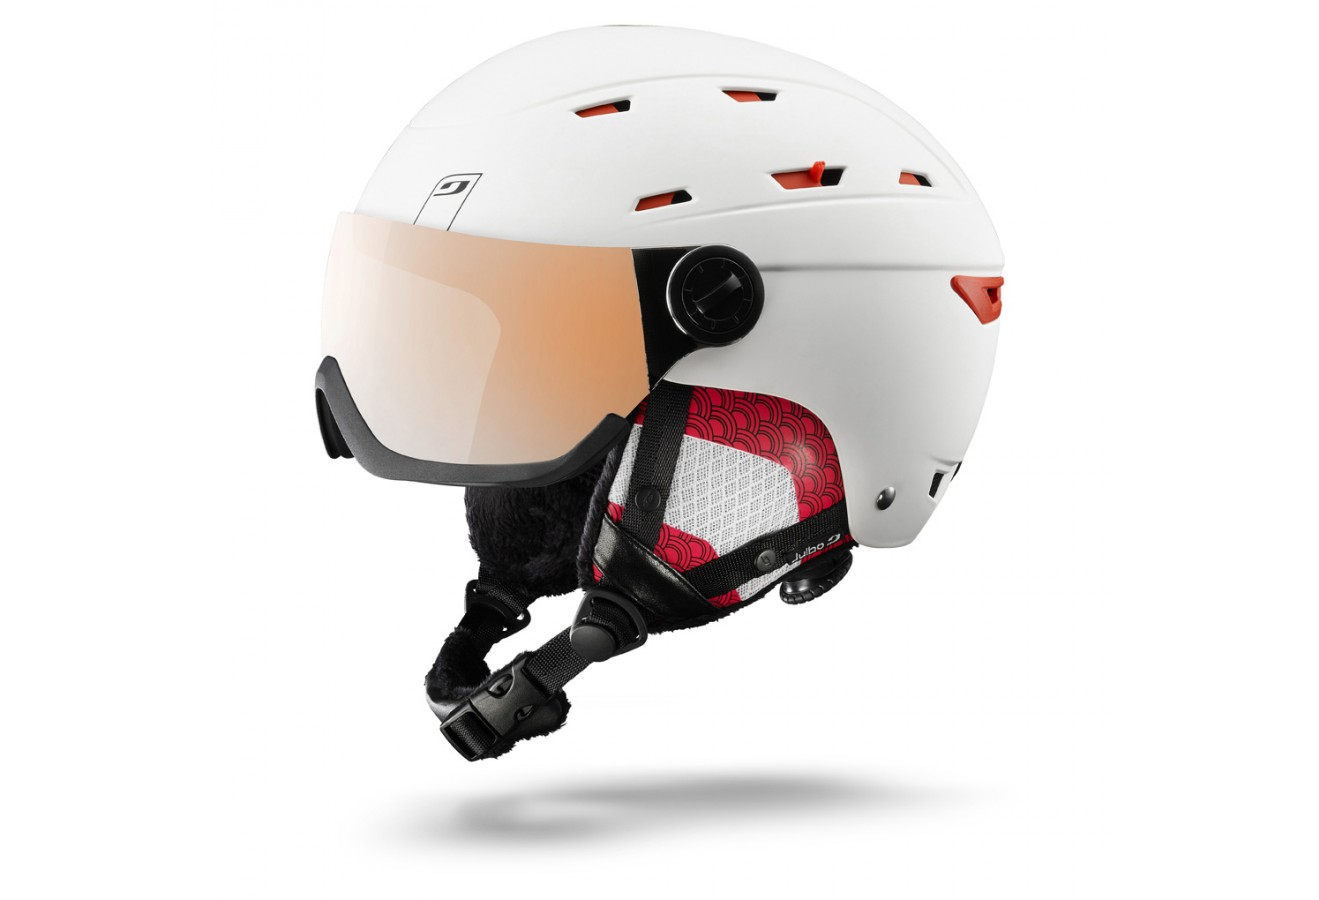 casque de ski julbo rebby visor blanc corail cat 3 flash si. Black Bedroom Furniture Sets. Home Design Ideas